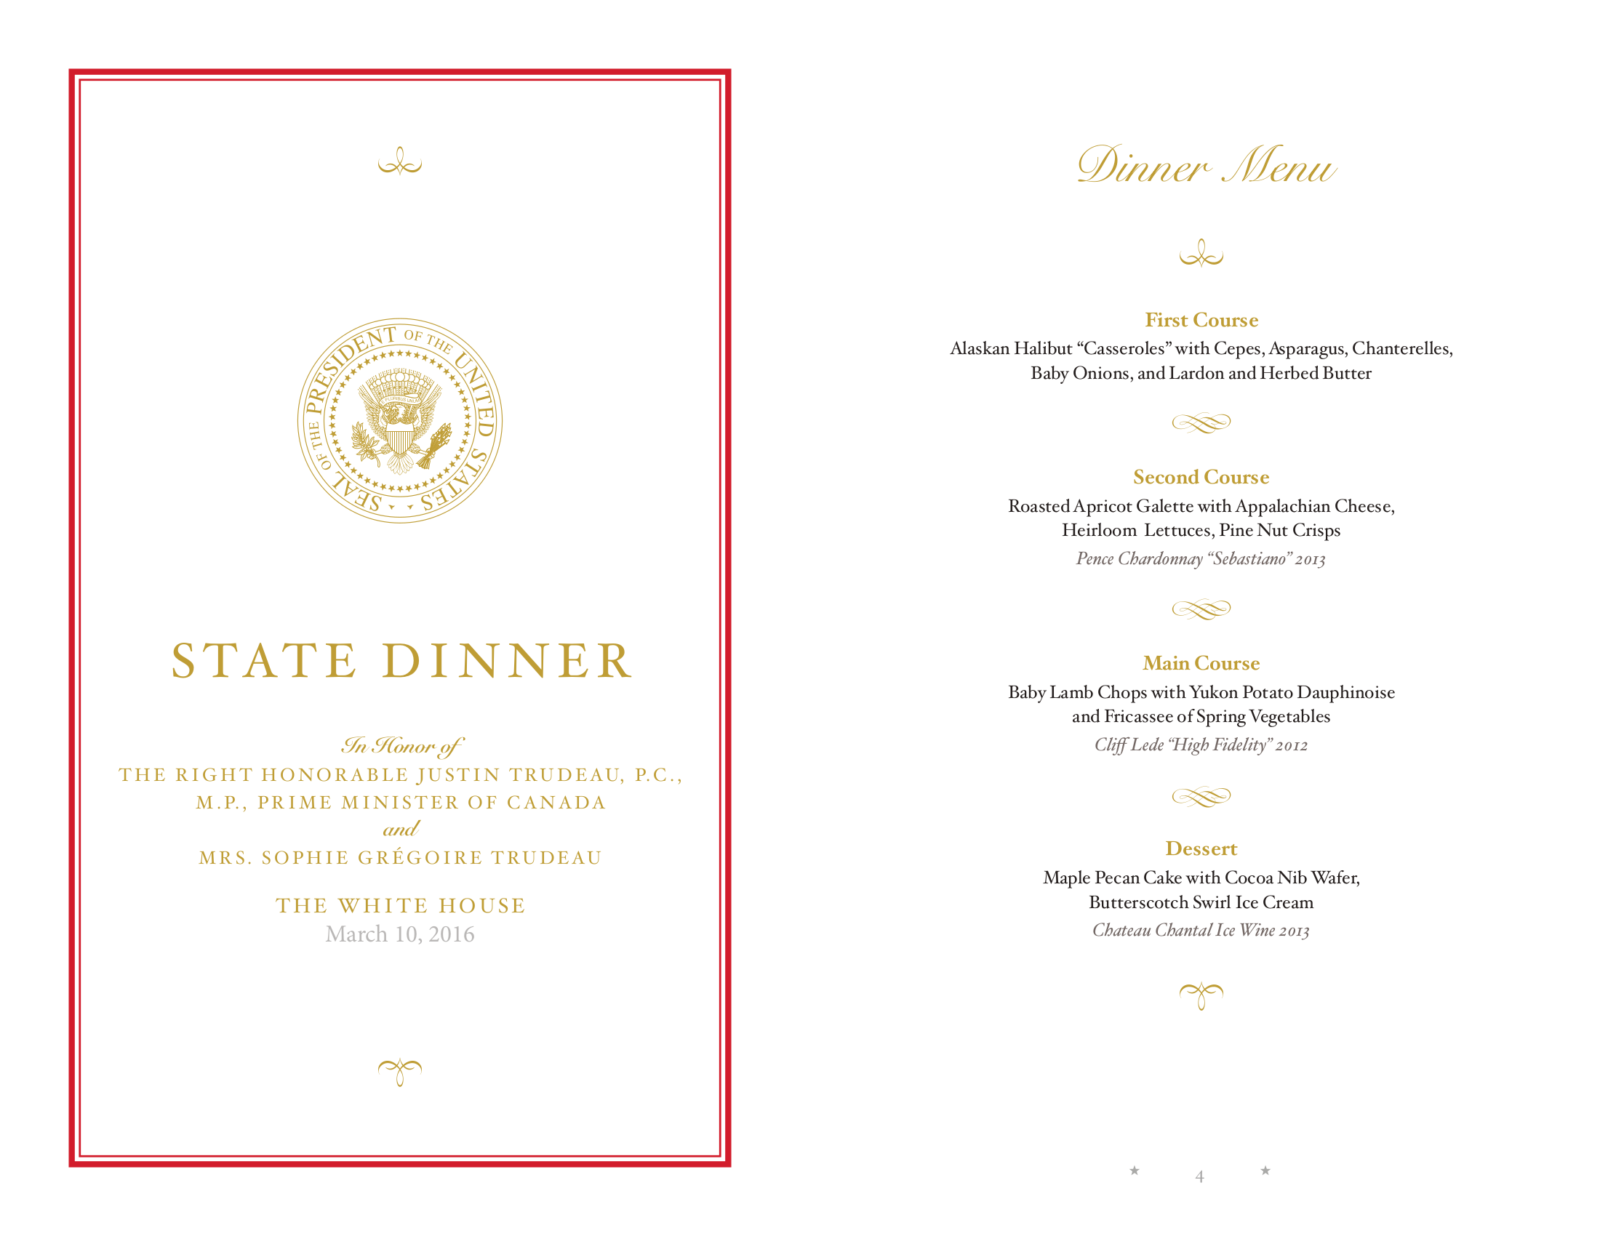 Menu from the March 10th White House State Dinner